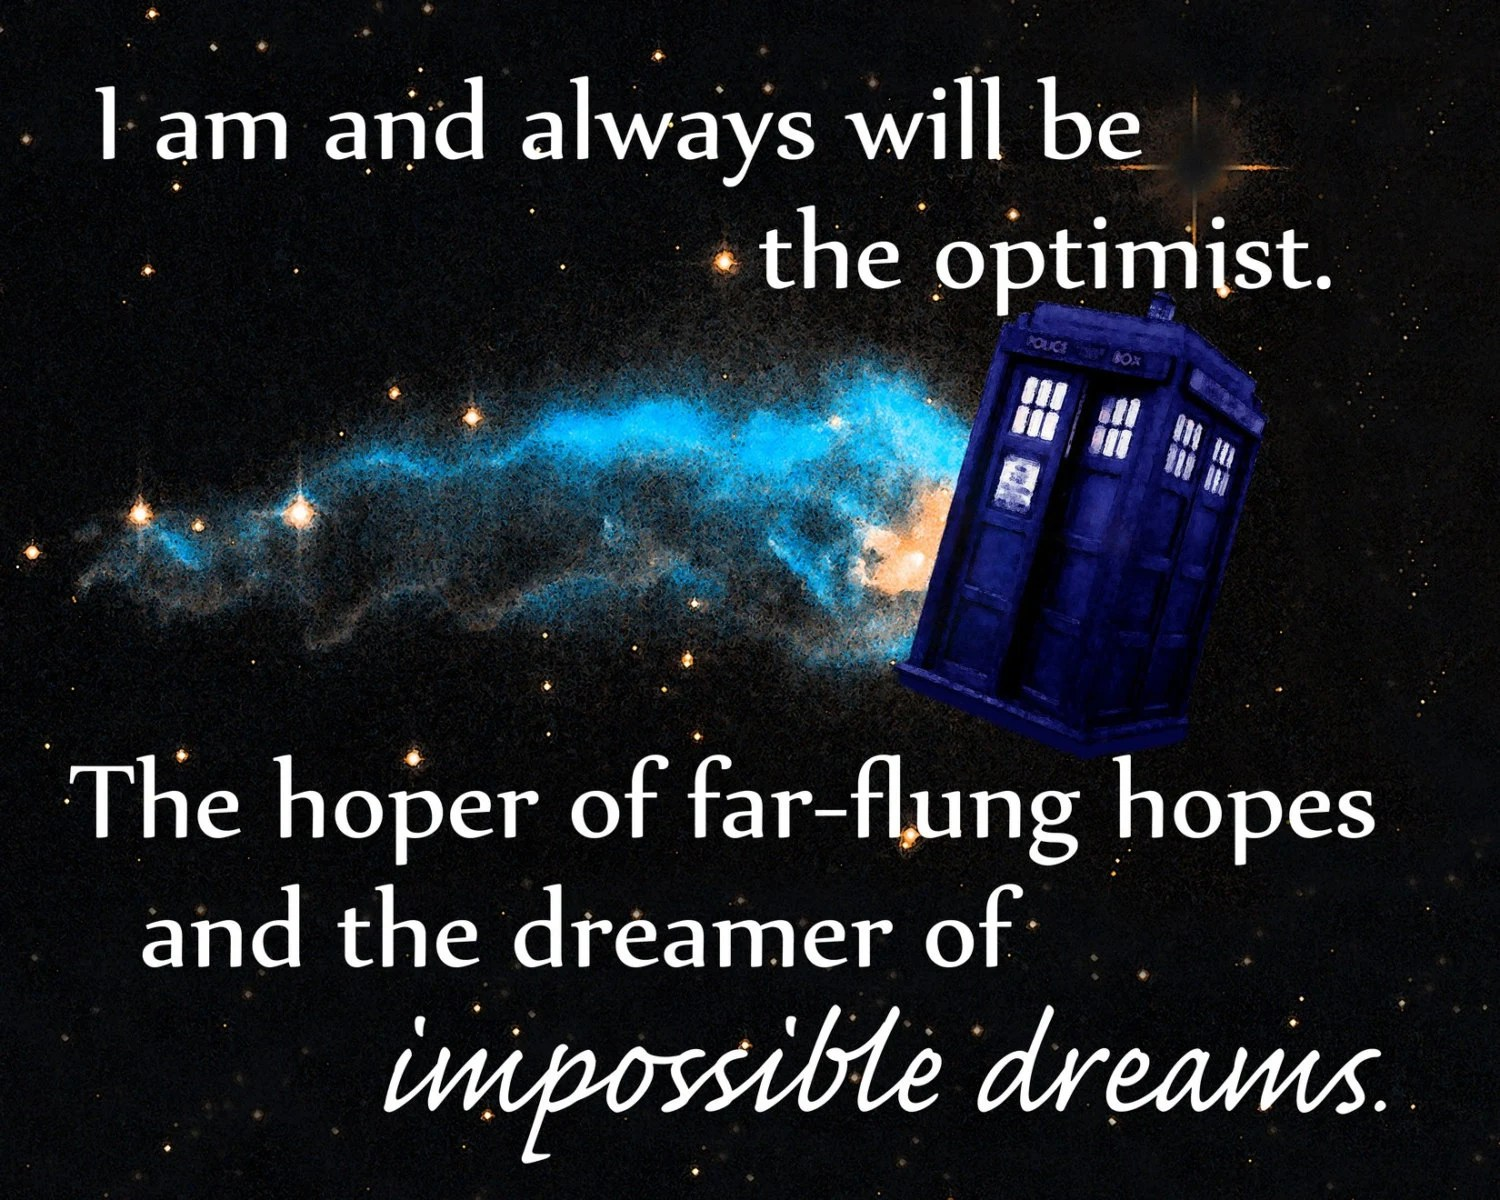 I am and always will be the optimist. The hoper of far-flung hopes and the dreamer of impossible dreams.